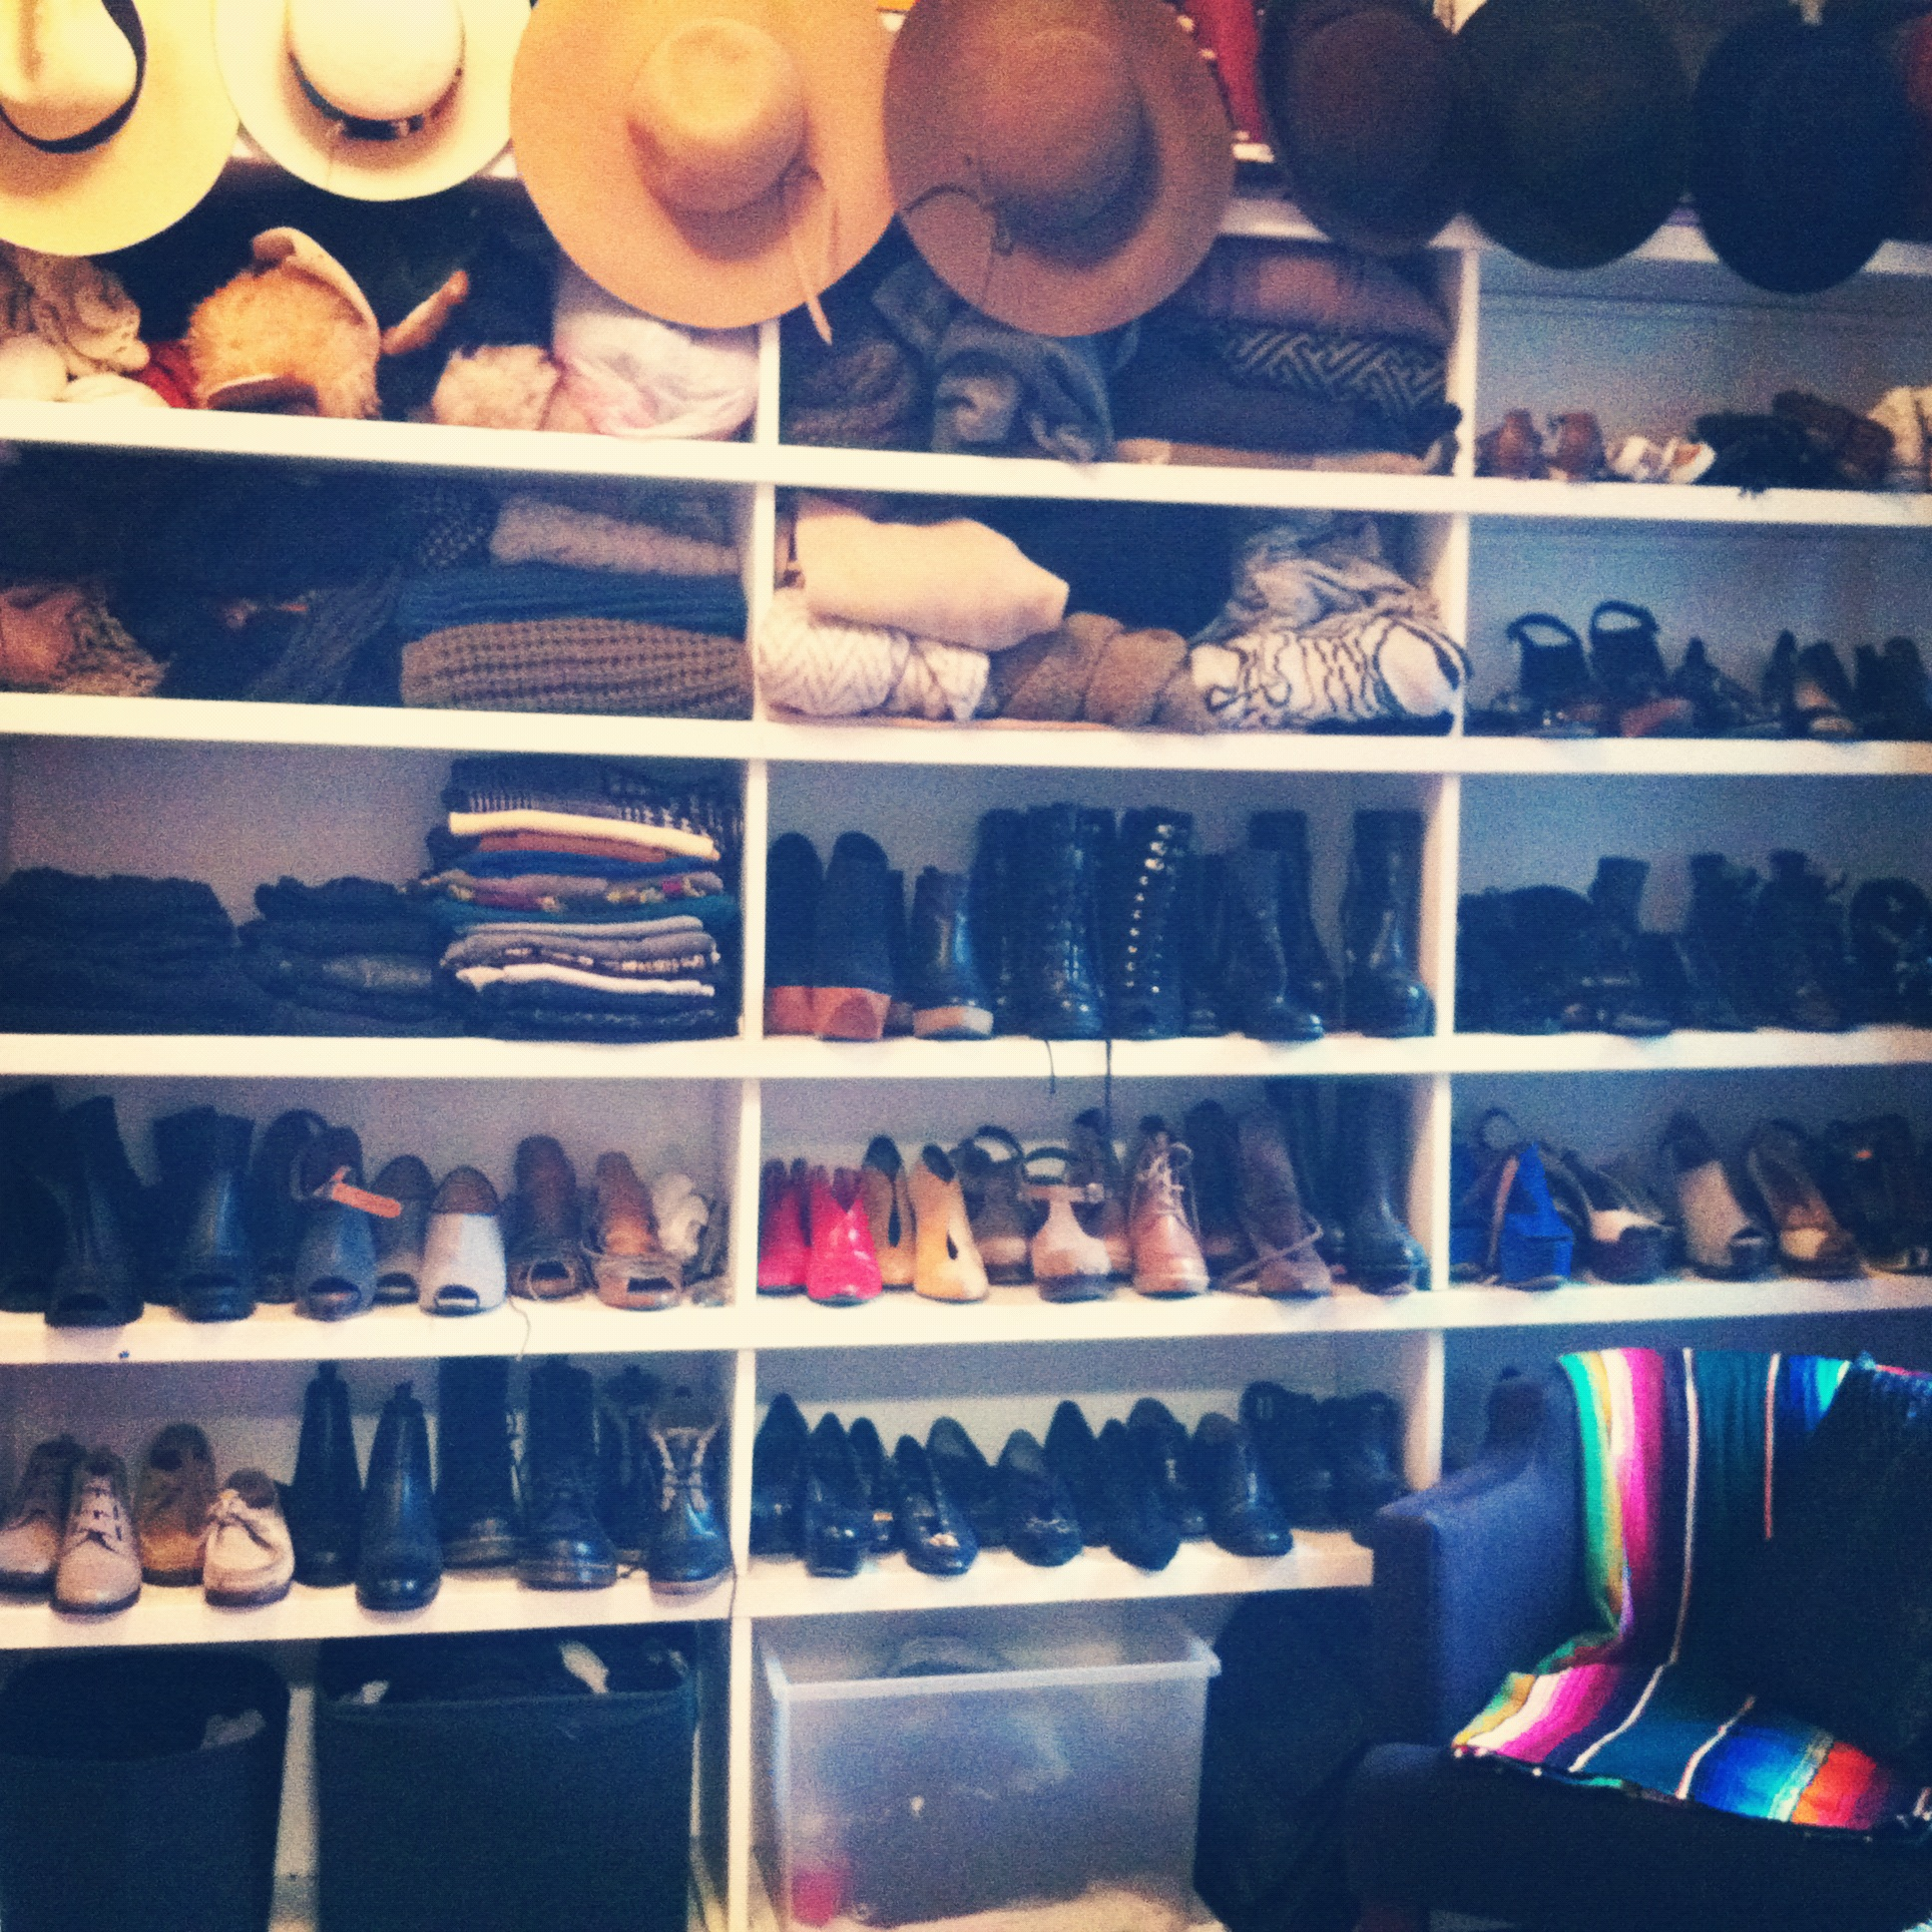 Blind-Stab-Dana-Suchow-Closet-Brooklyn-Shoes-Hats-Instagram